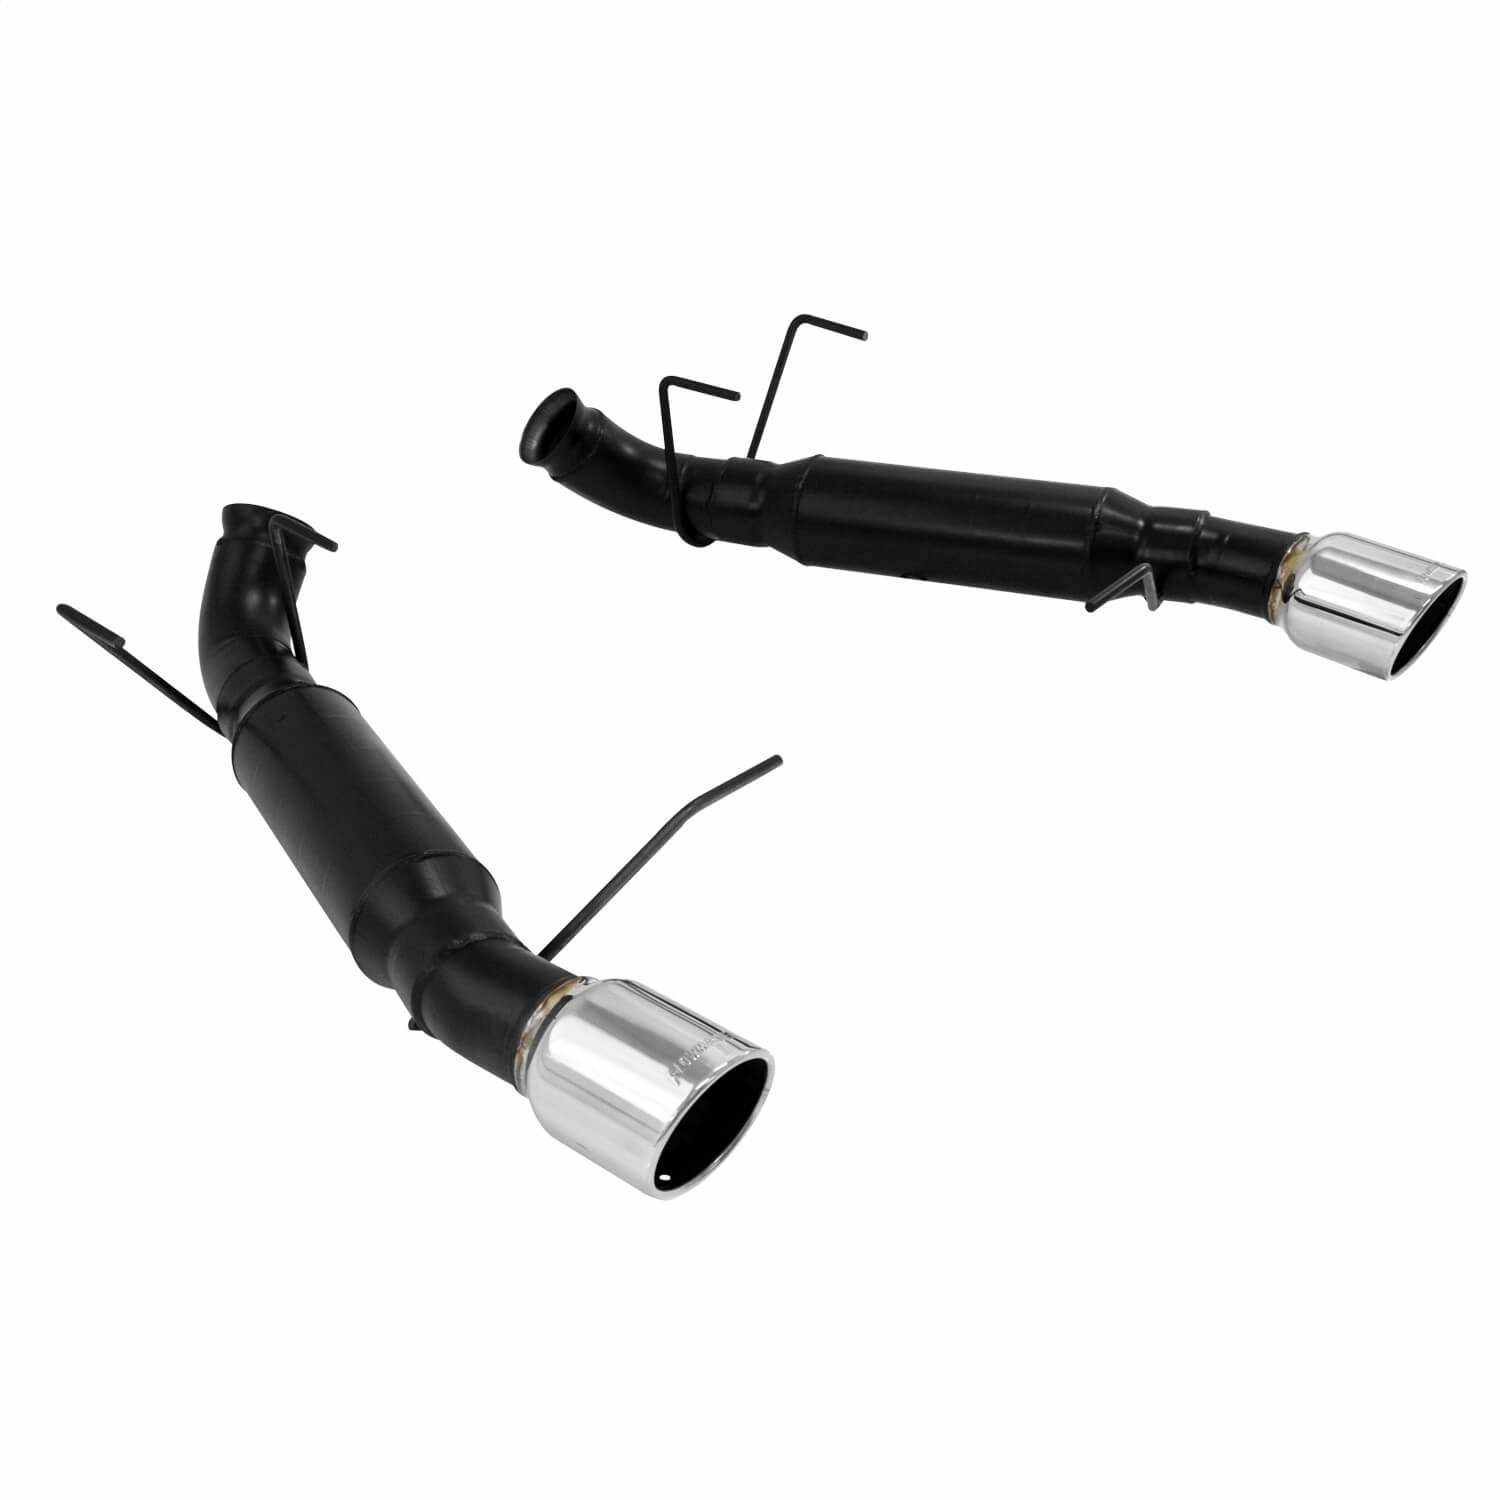 Flowmaster 817516 Outlaw Series™ Axle Back Exhaust System